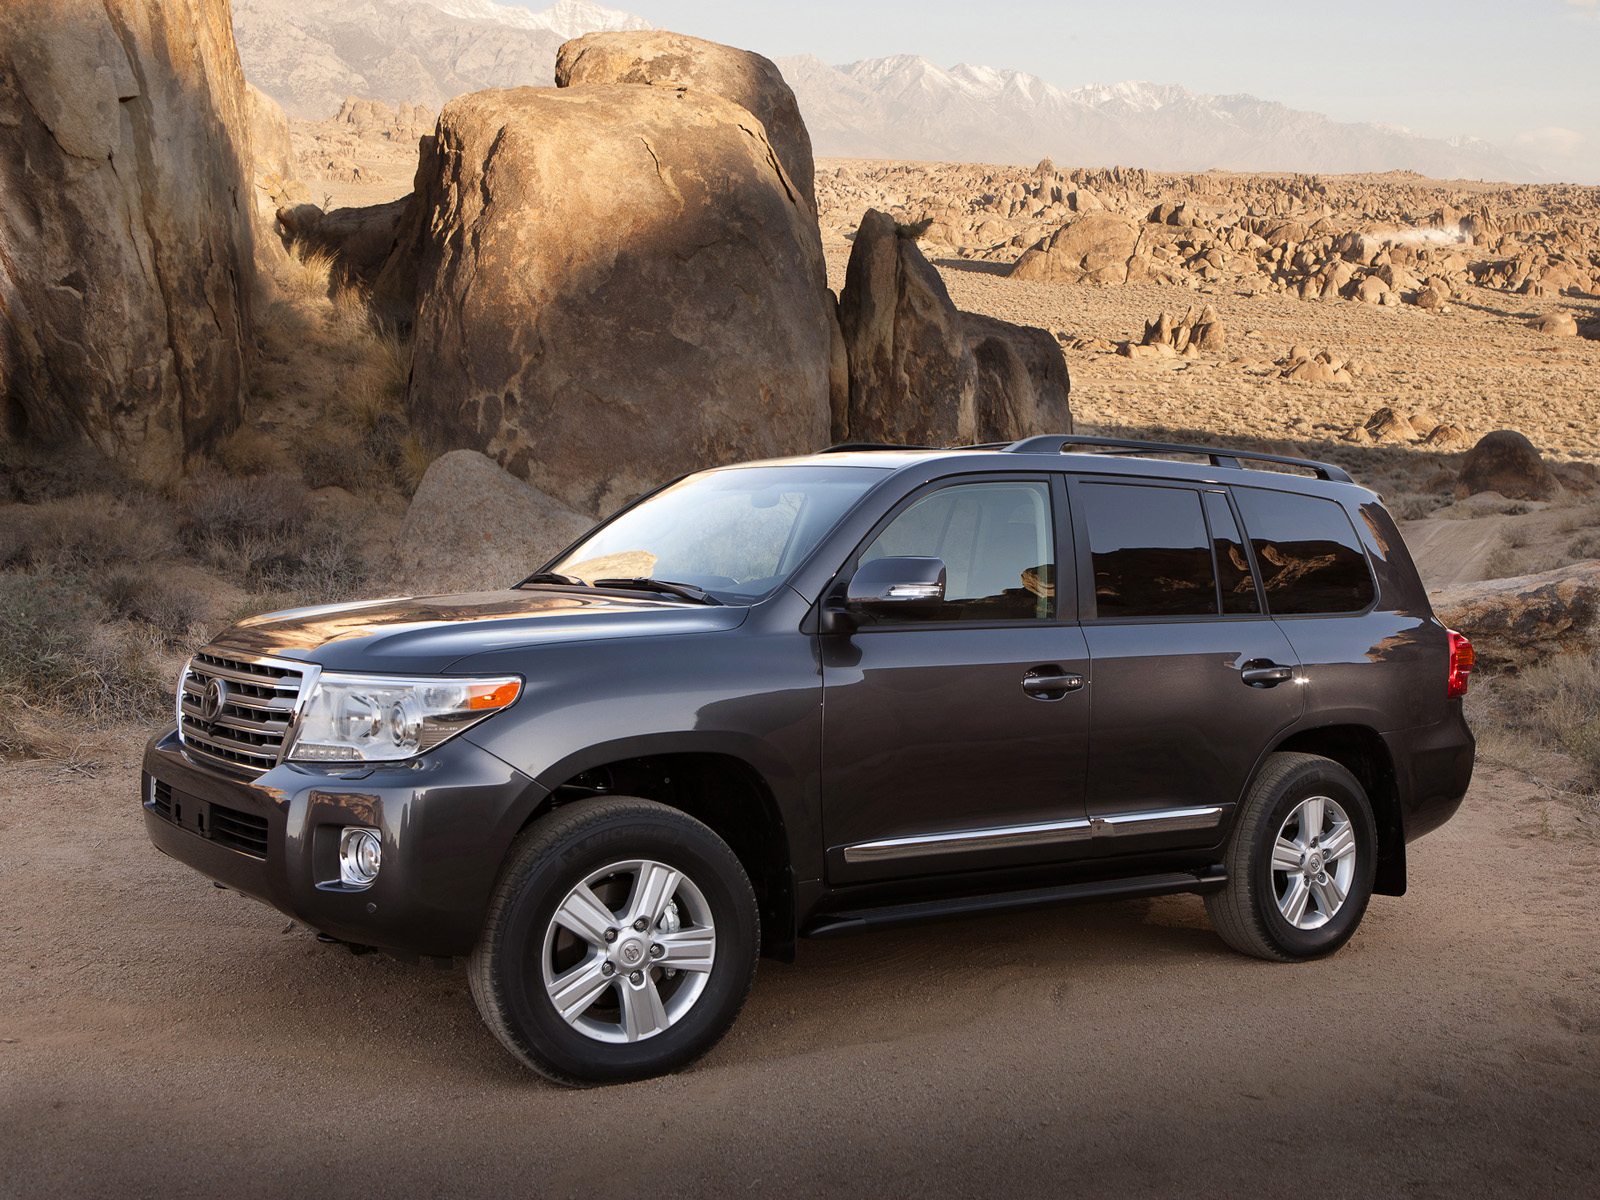 Toyota Land-Cruiser